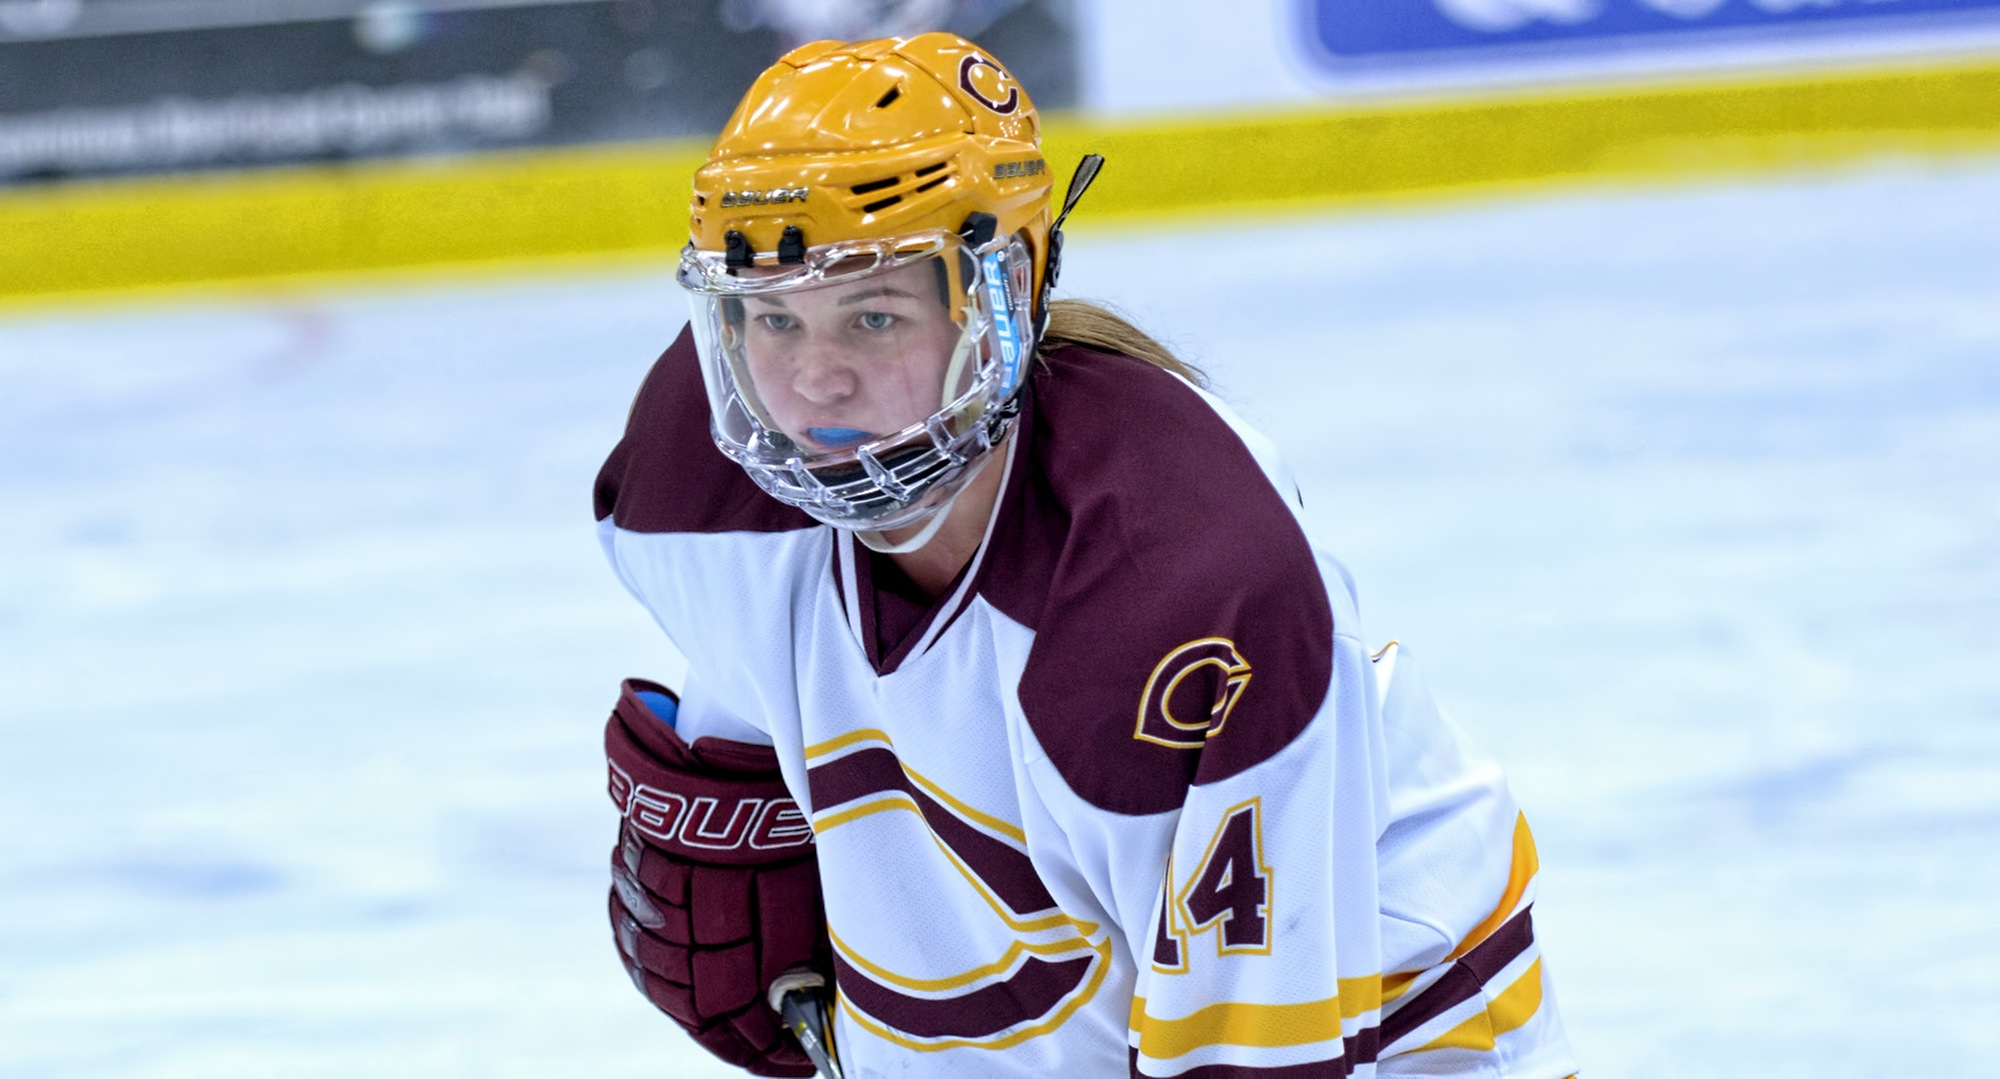 Freshman Callie Fagerstrom scored the game-winning goal in the Cobbers' 3-1 win over St. Catherine.